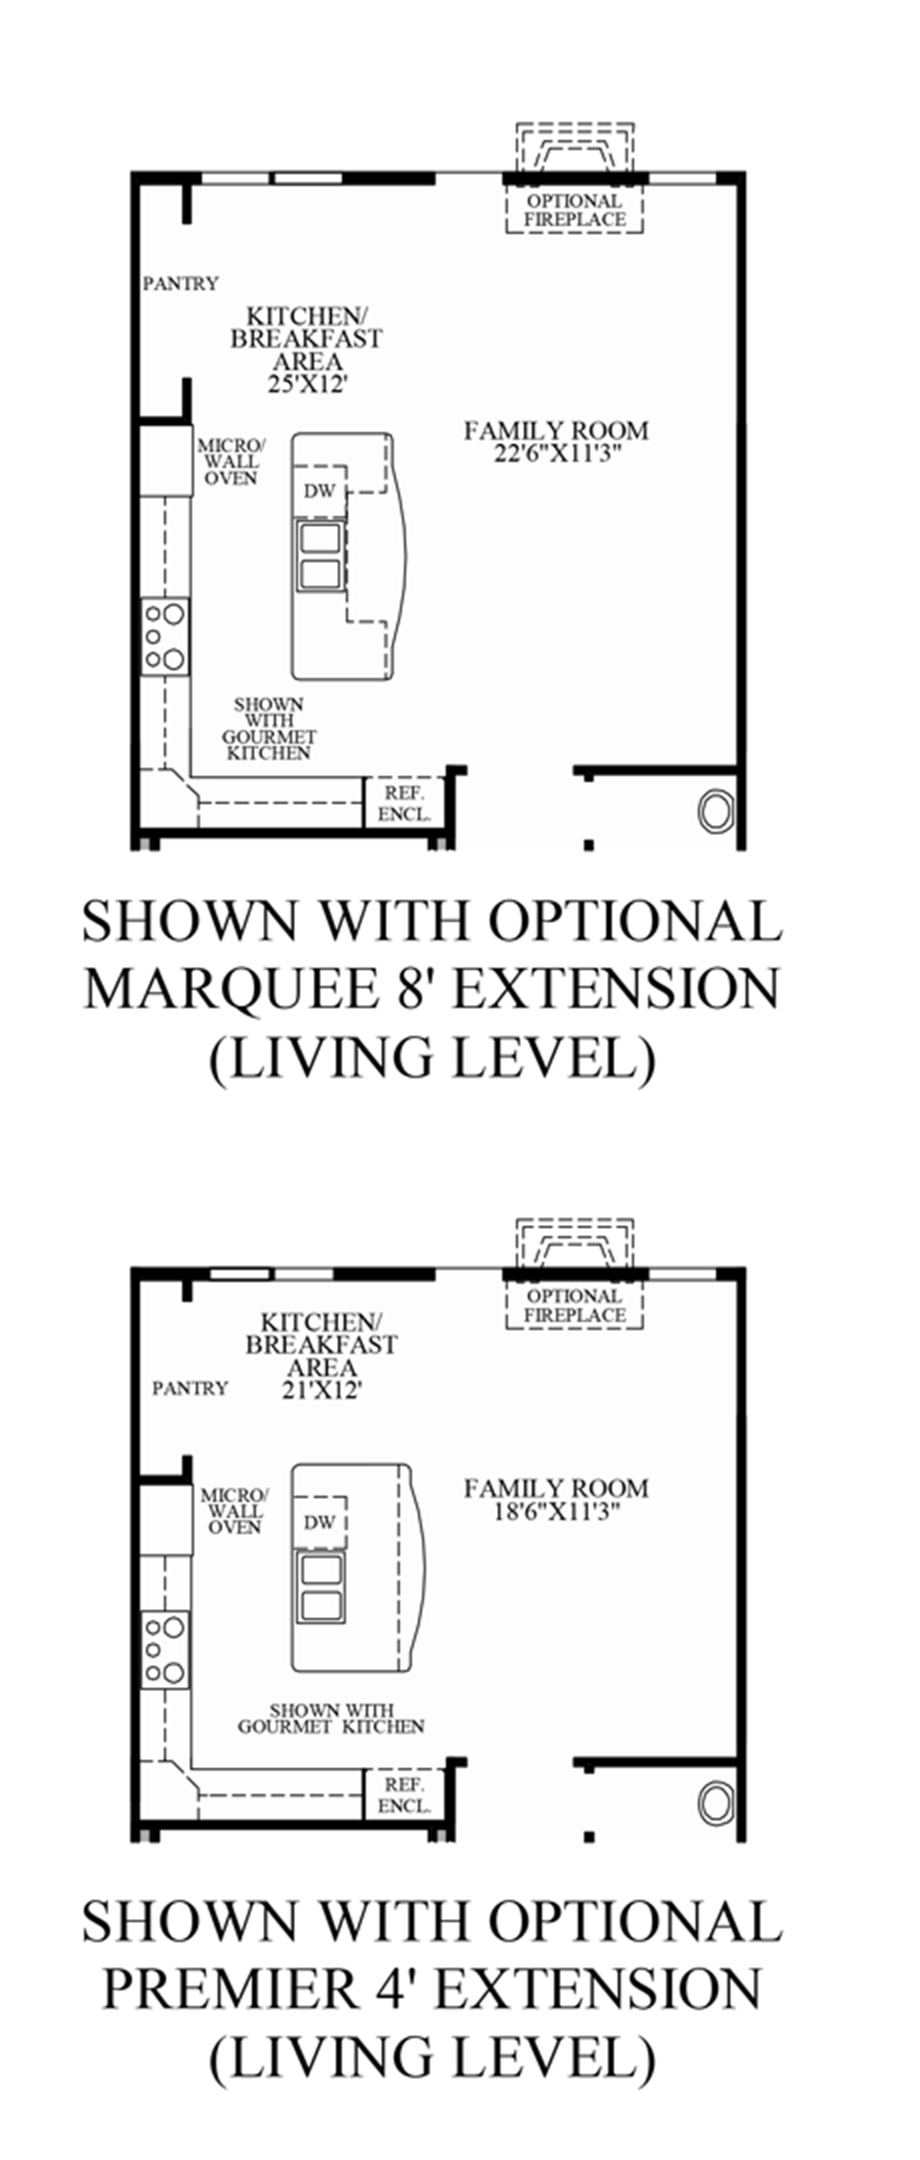 Optional Living Level Extensions (Lower Level Entry) Floor Plan